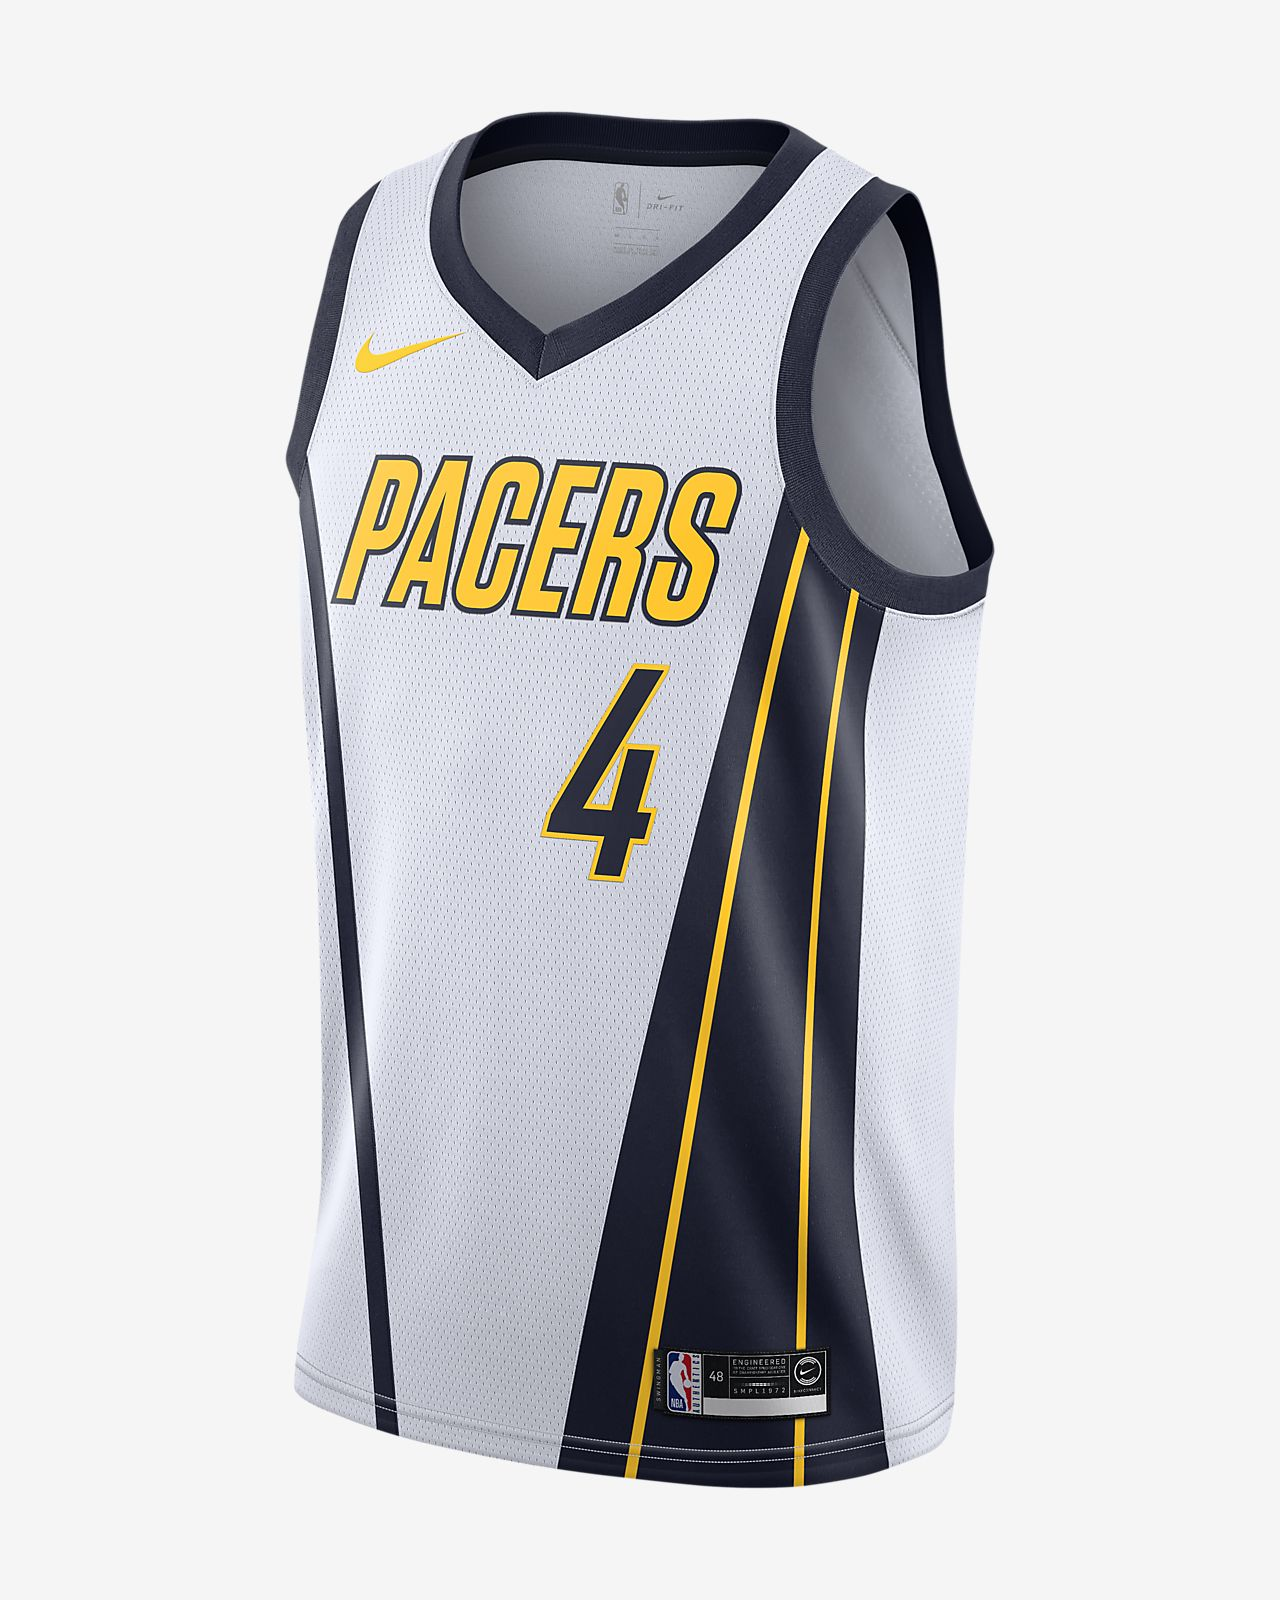 7644de603 Men s Nike NBA Connected Jersey. Victor Oladipo Earned City Edition  Swingman (Indiana Pacers)